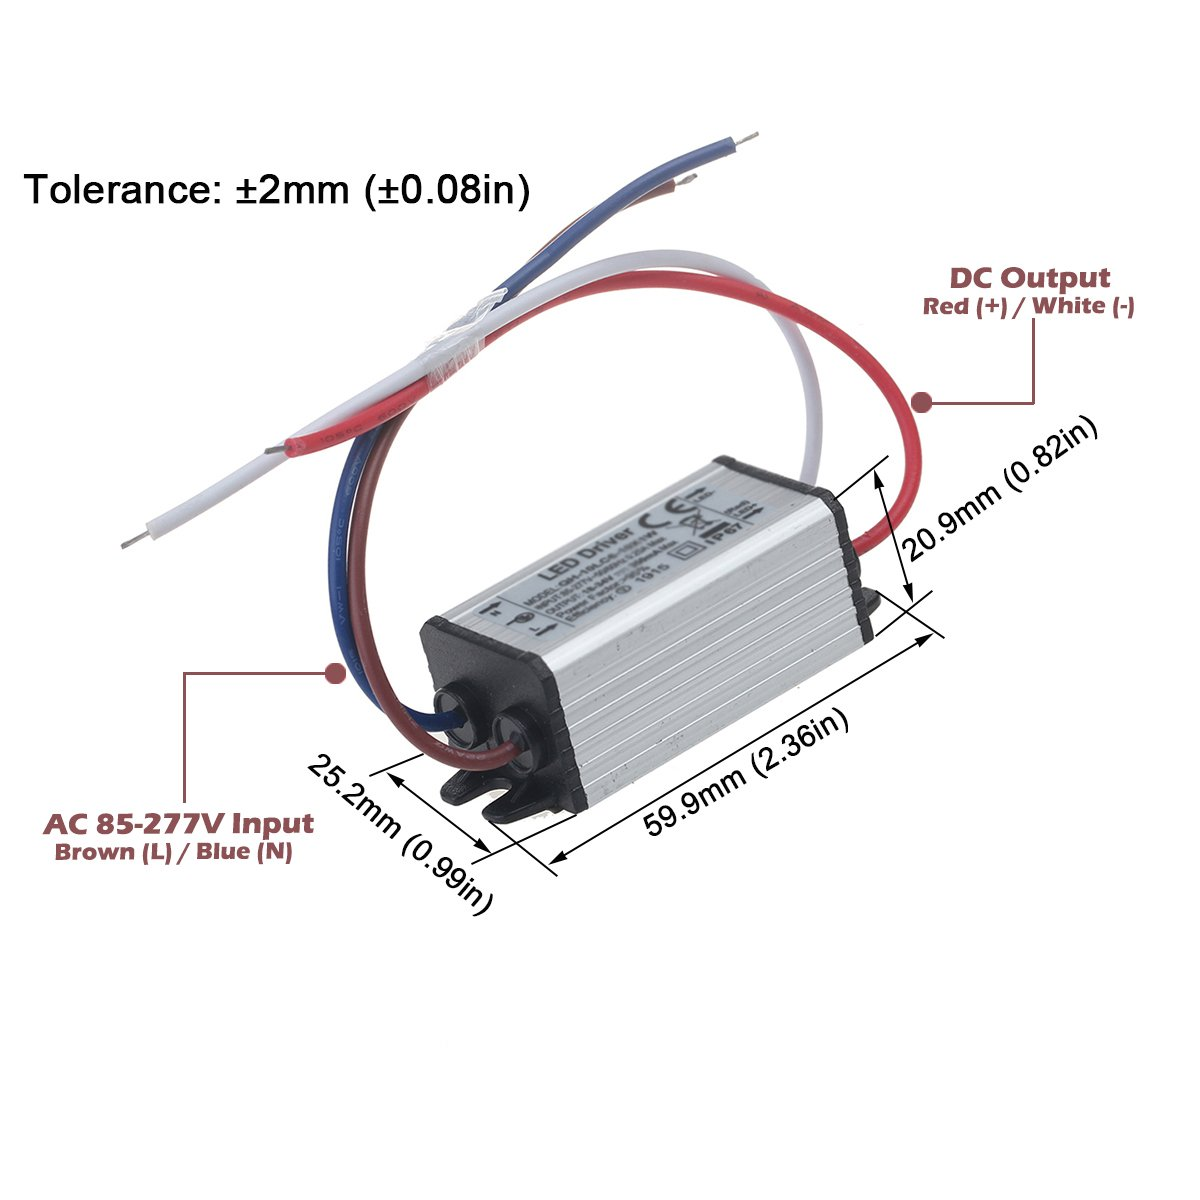 Chanzon Led Driver 300ma Constant Current Output 3v 20v 85 277v Wiring 3w Leds In Series Ac Dc 1 6 X1w 1w 2w 4w 5w 6w Ip67 Waterproof High Power Supply 300 Ma Lighting